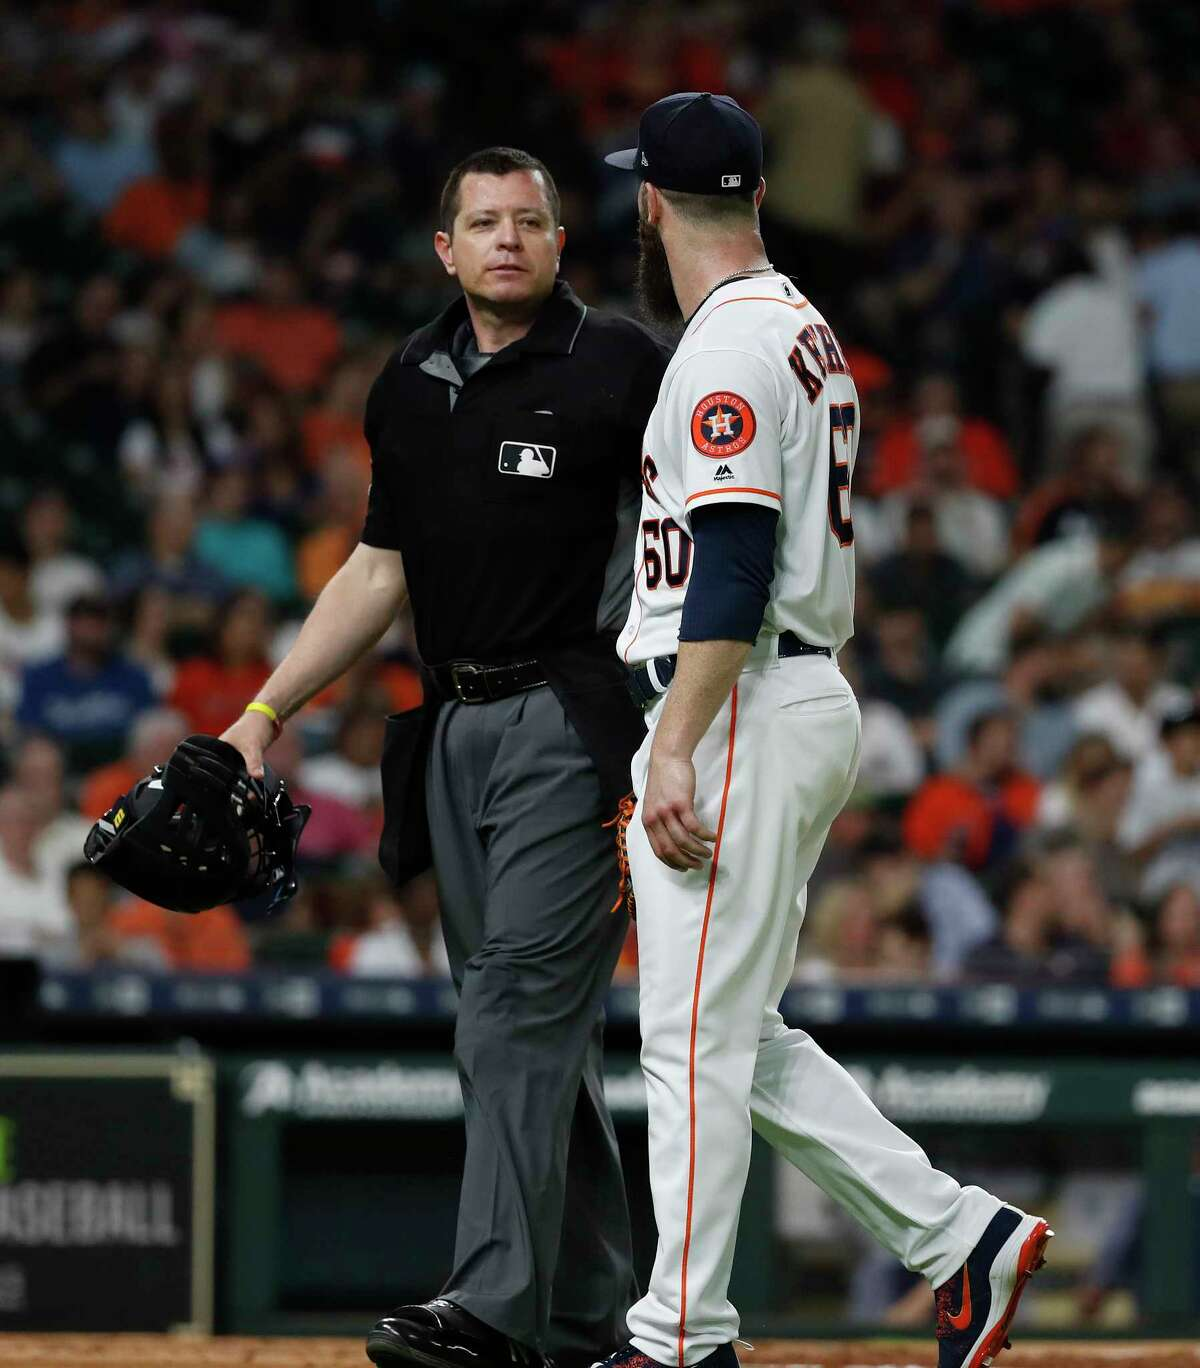 Houston Astros starting pitcher Dallas Keuchel (60) has words with home plate umpire Carlos Torres after getting pulled during the seventh inning of an MLB game at Minute Maid Park, Tuesday, June 5, 2018, in La Porte.